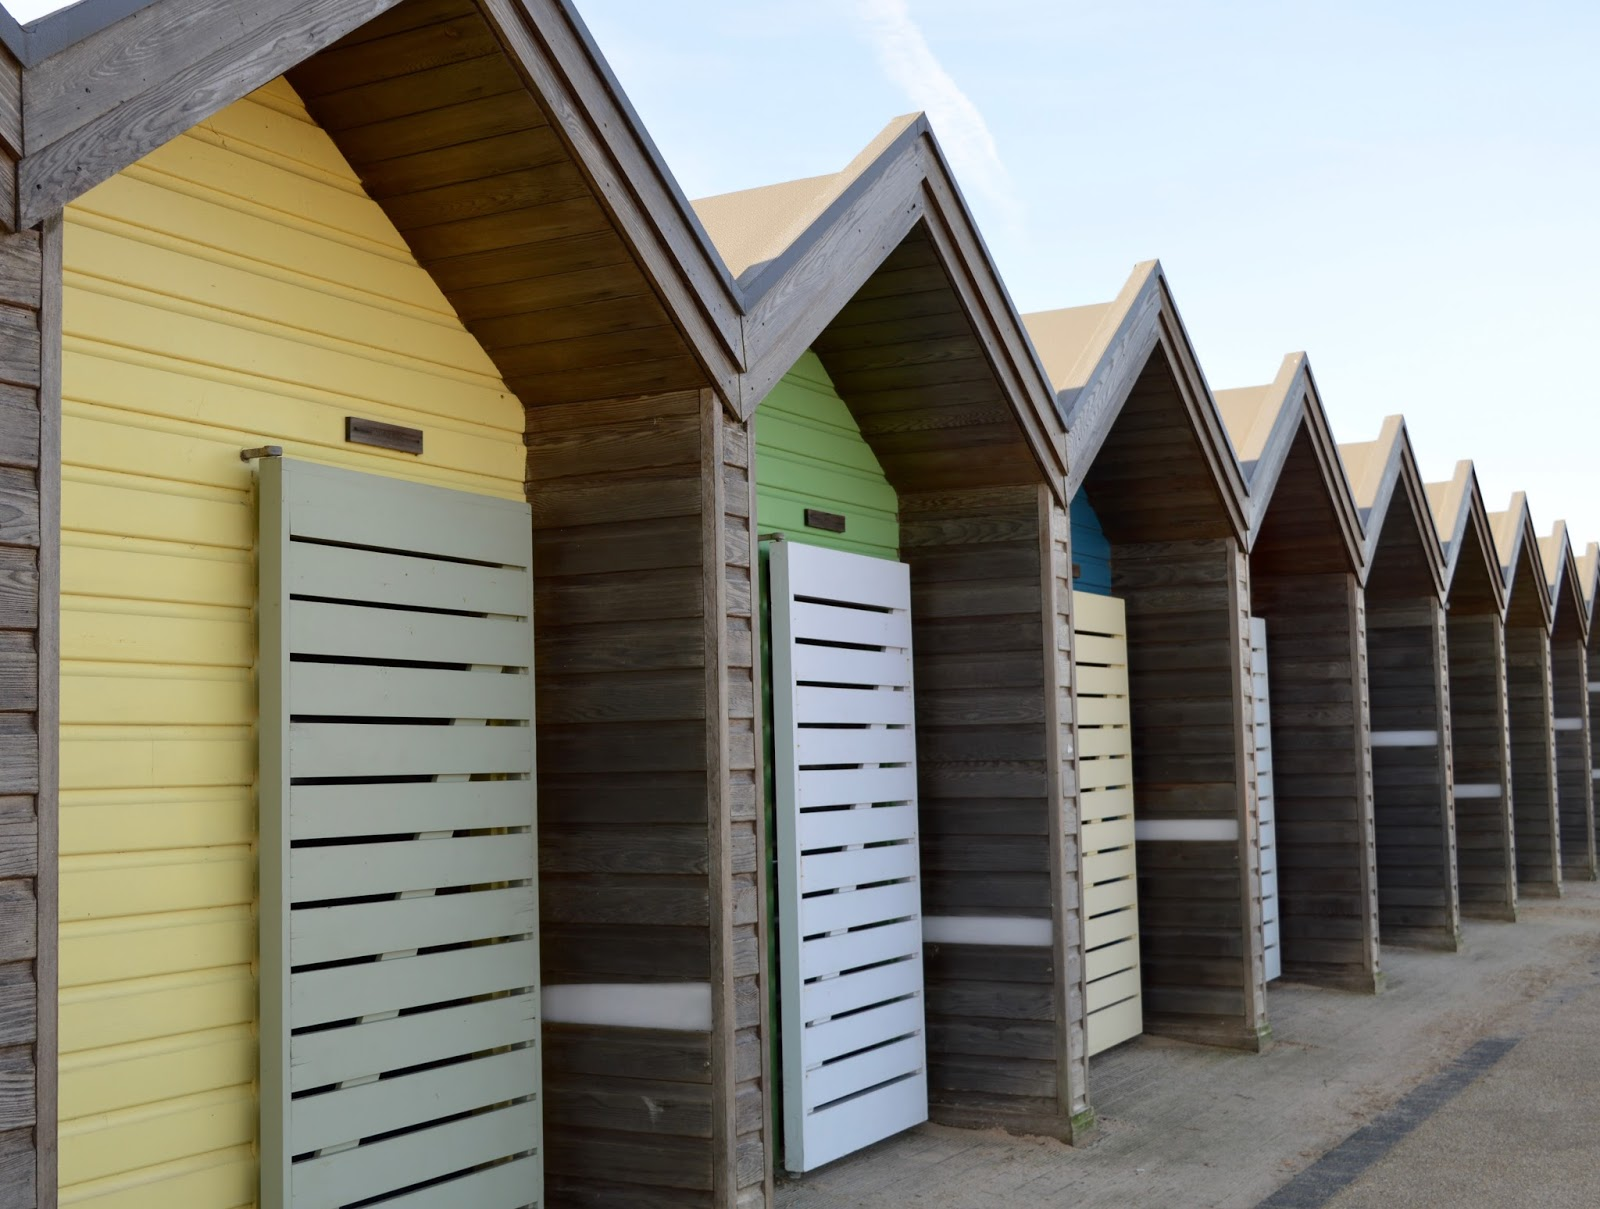 A Trip to Blyth Beach | How to Hire Beach Huts, Bus Information & Coastline Fish & Chips | Beach hut close up